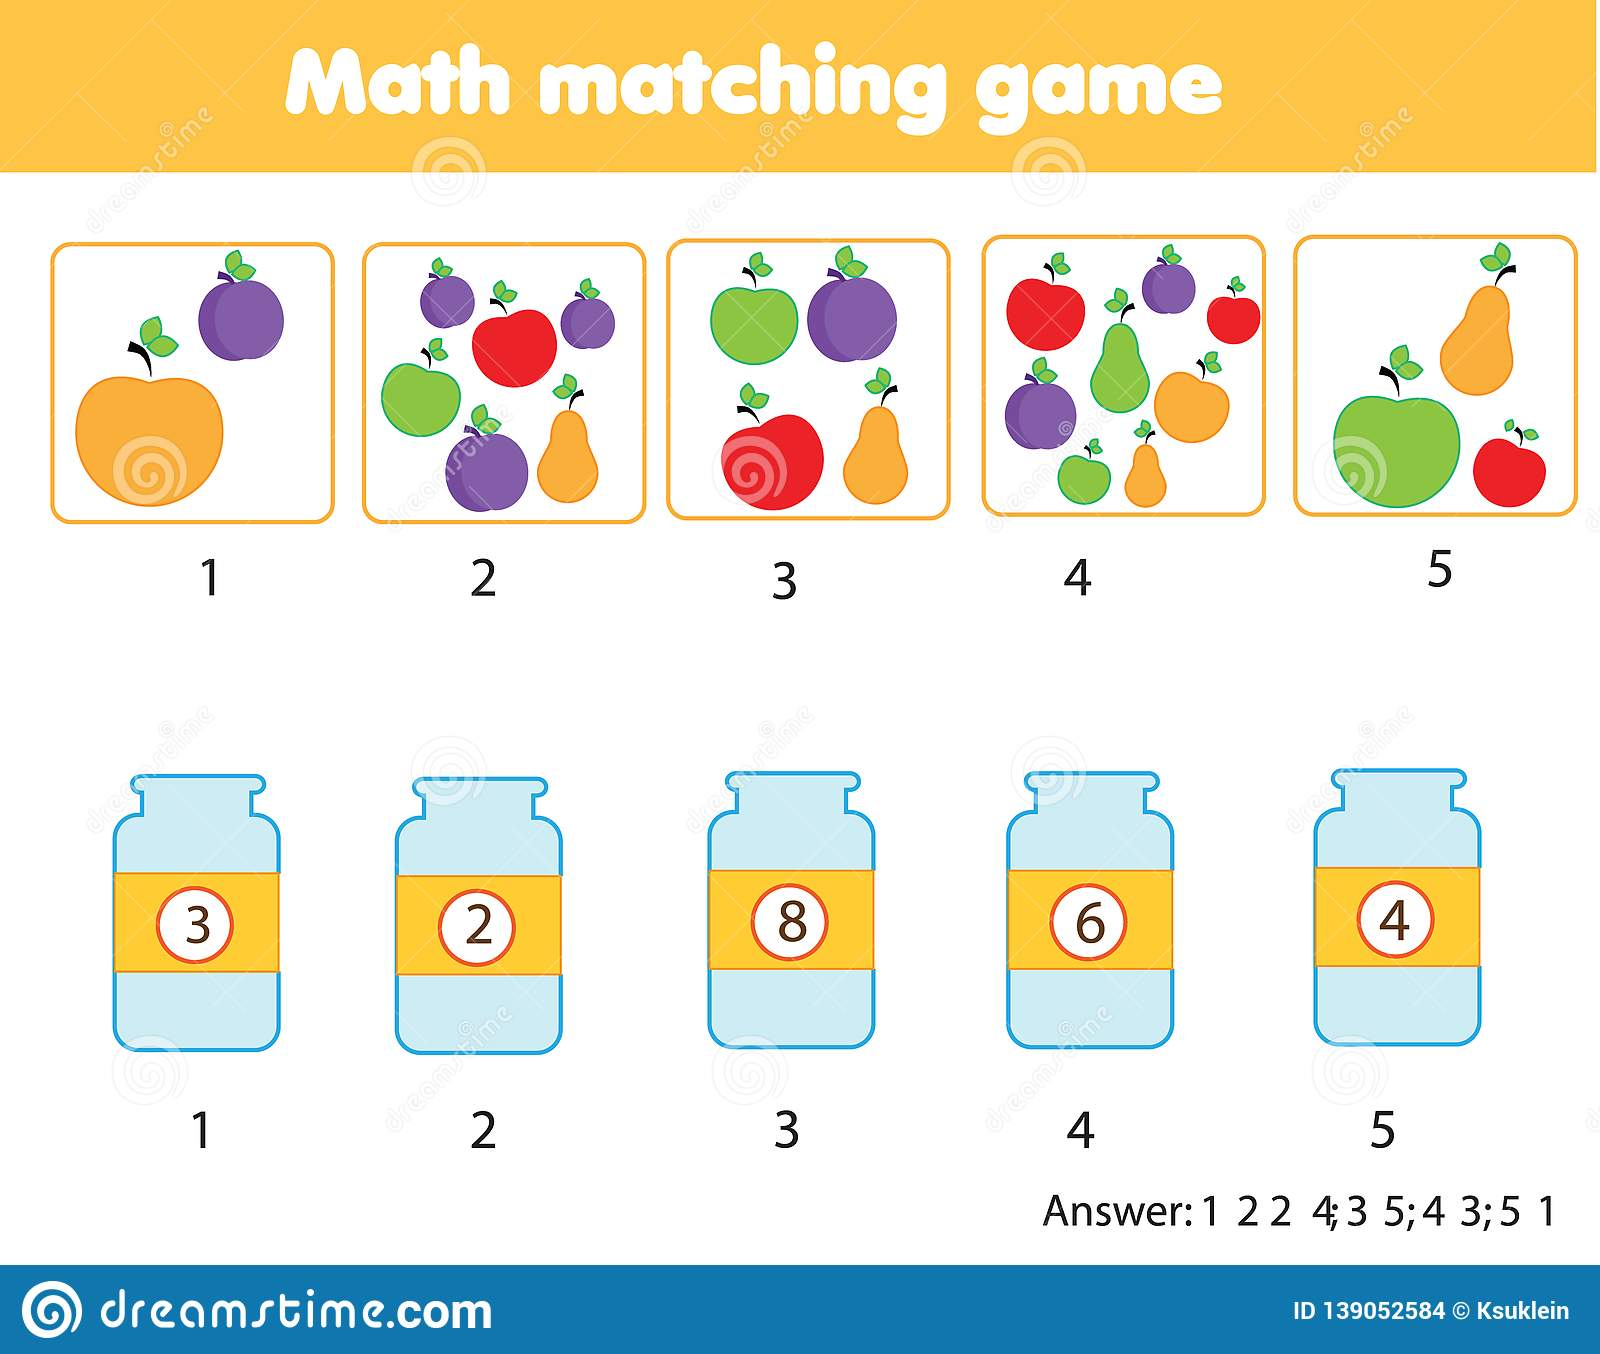 Mathematics Educational Game For Children Match Objects